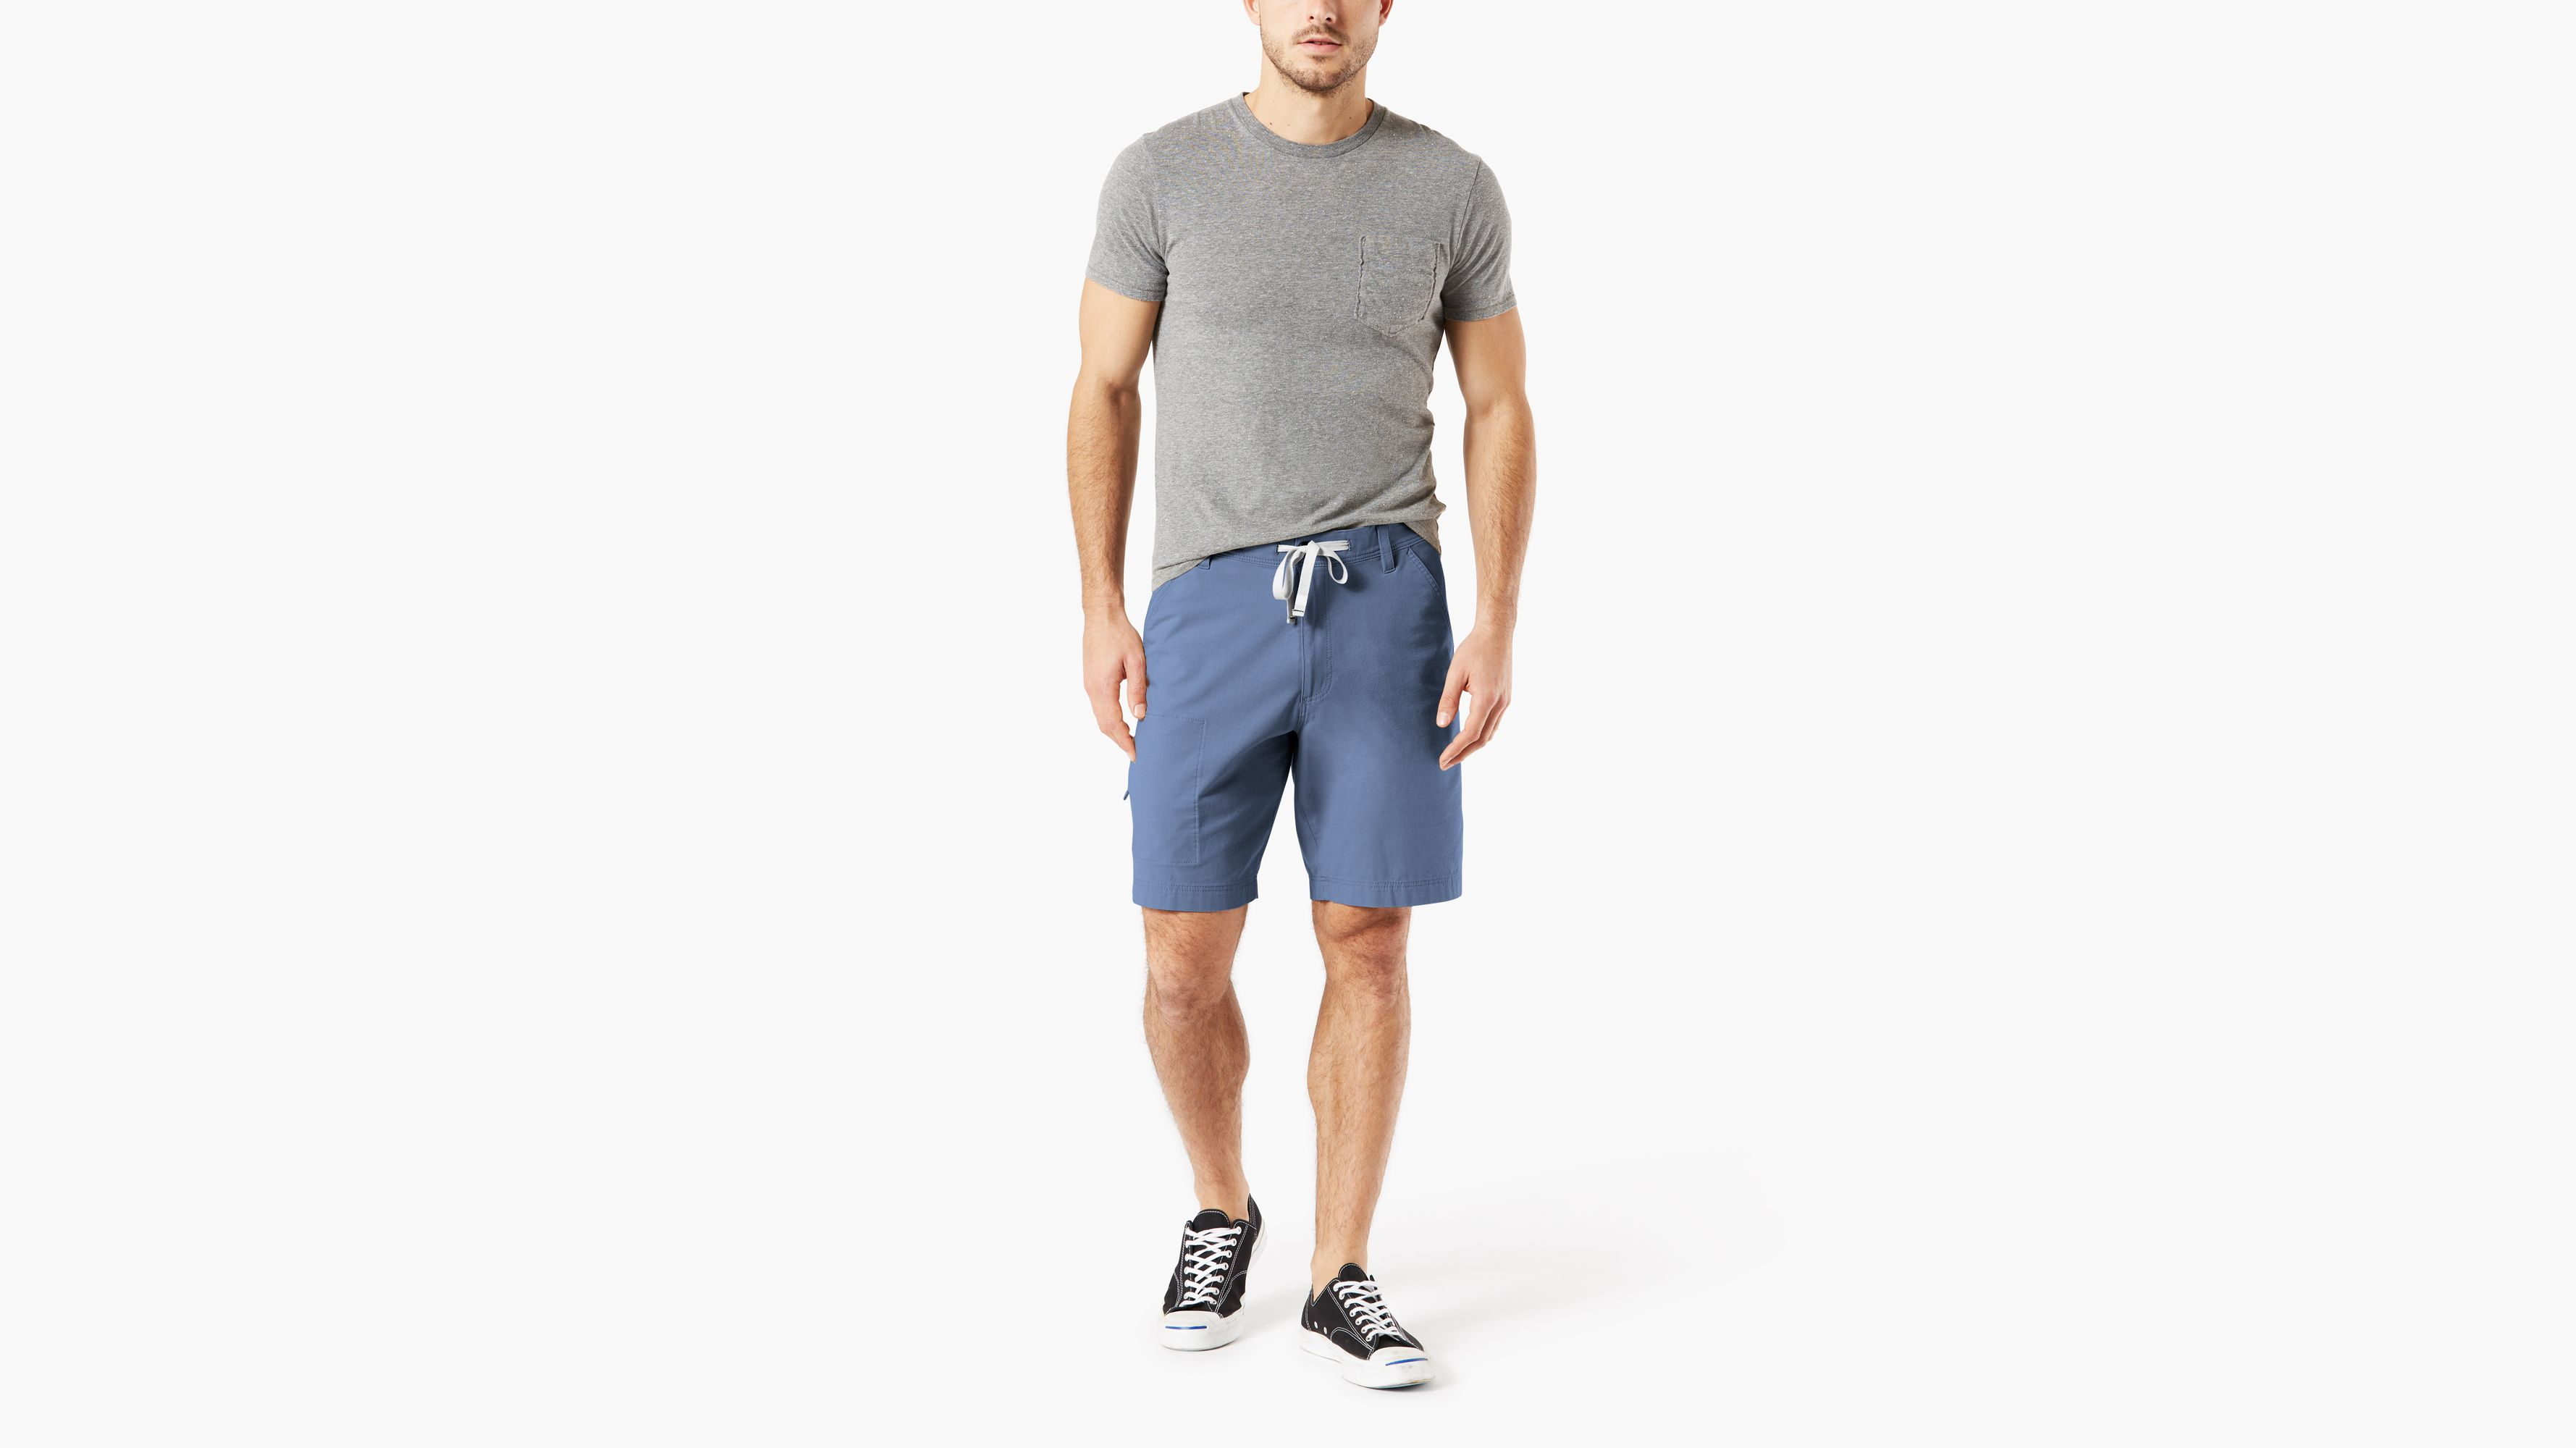 2c2977131443 Utility Shorts With Smart 360 Flex™ Shorts, Straight Fit - Blue 798770006 |  Dockers® US